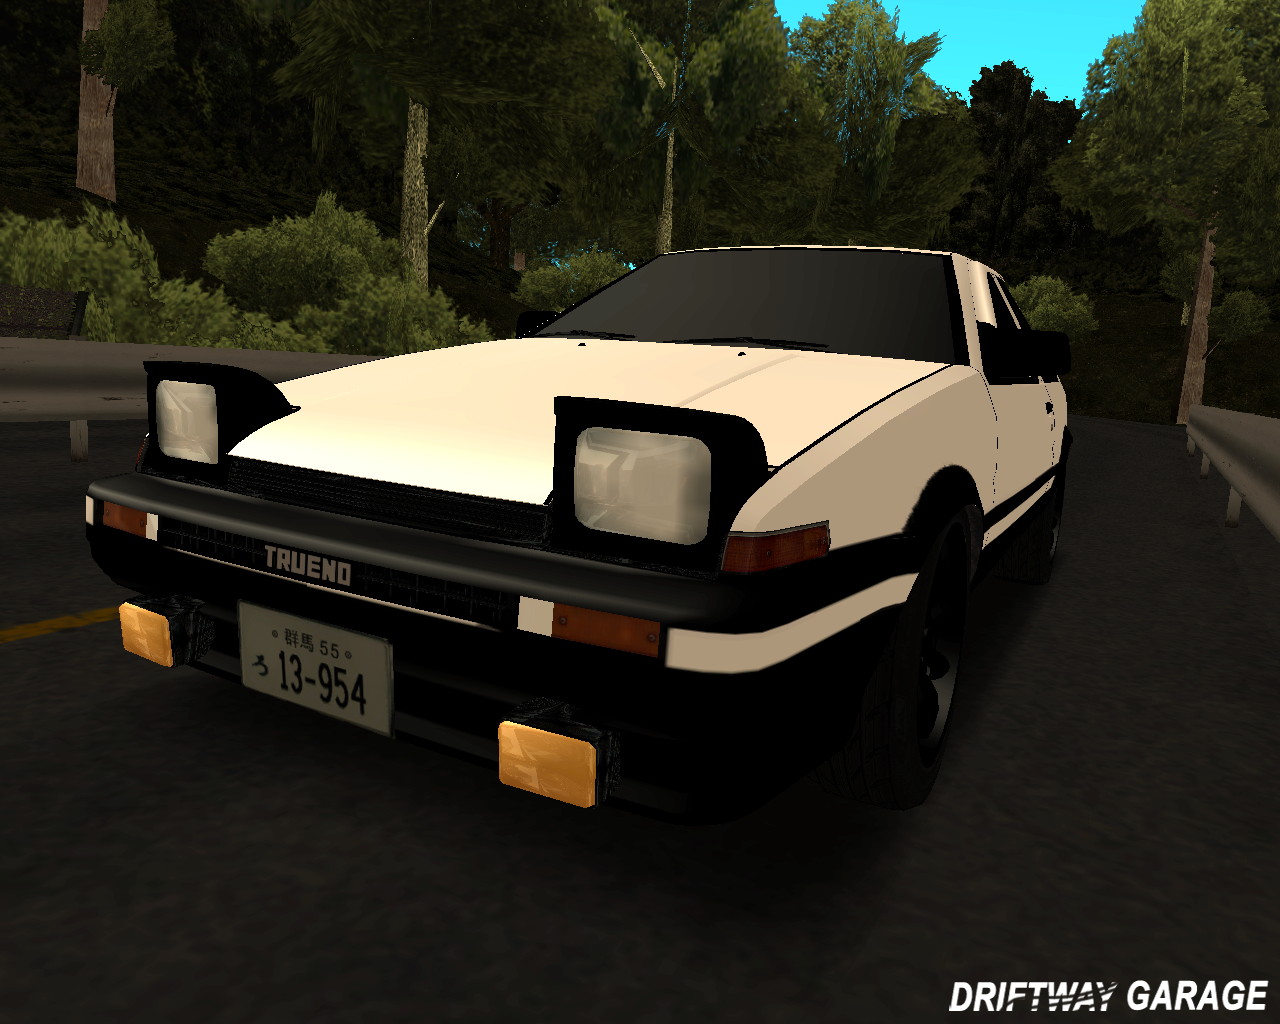 Did Toyota Make New Cars For Initial D